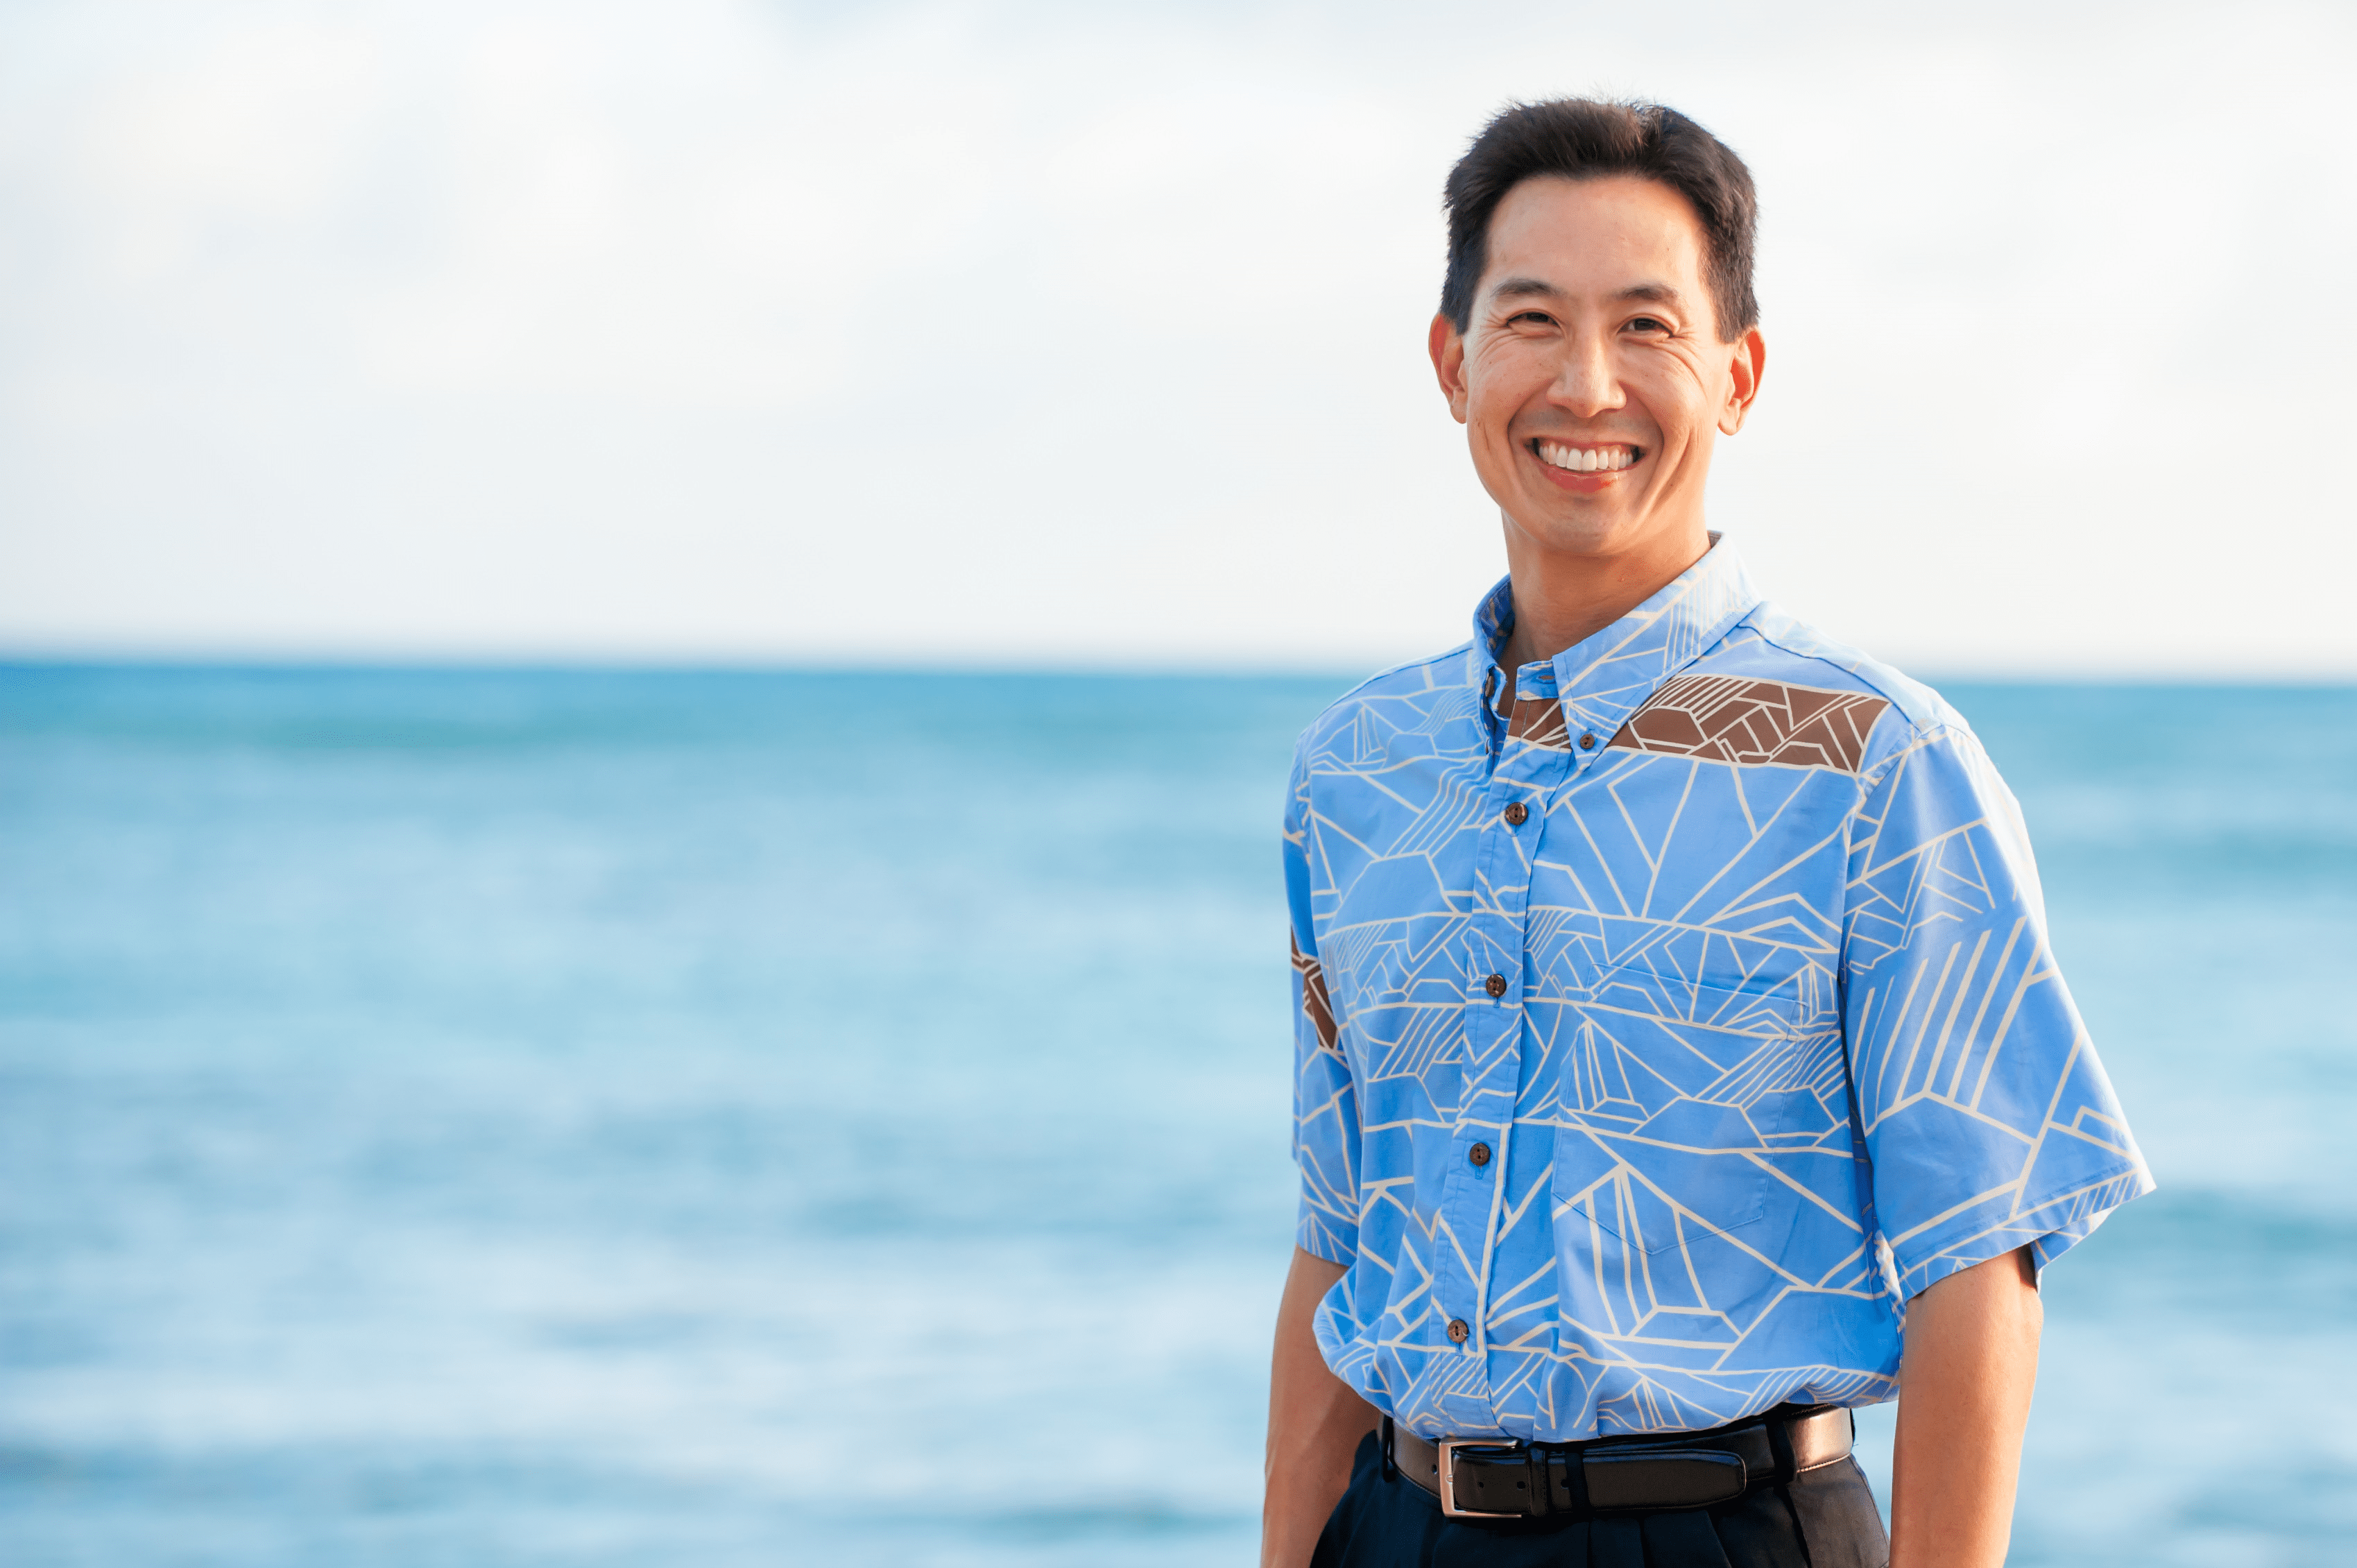 Republican Djou Leads CD1 Money Race as Democrats Slug It Out